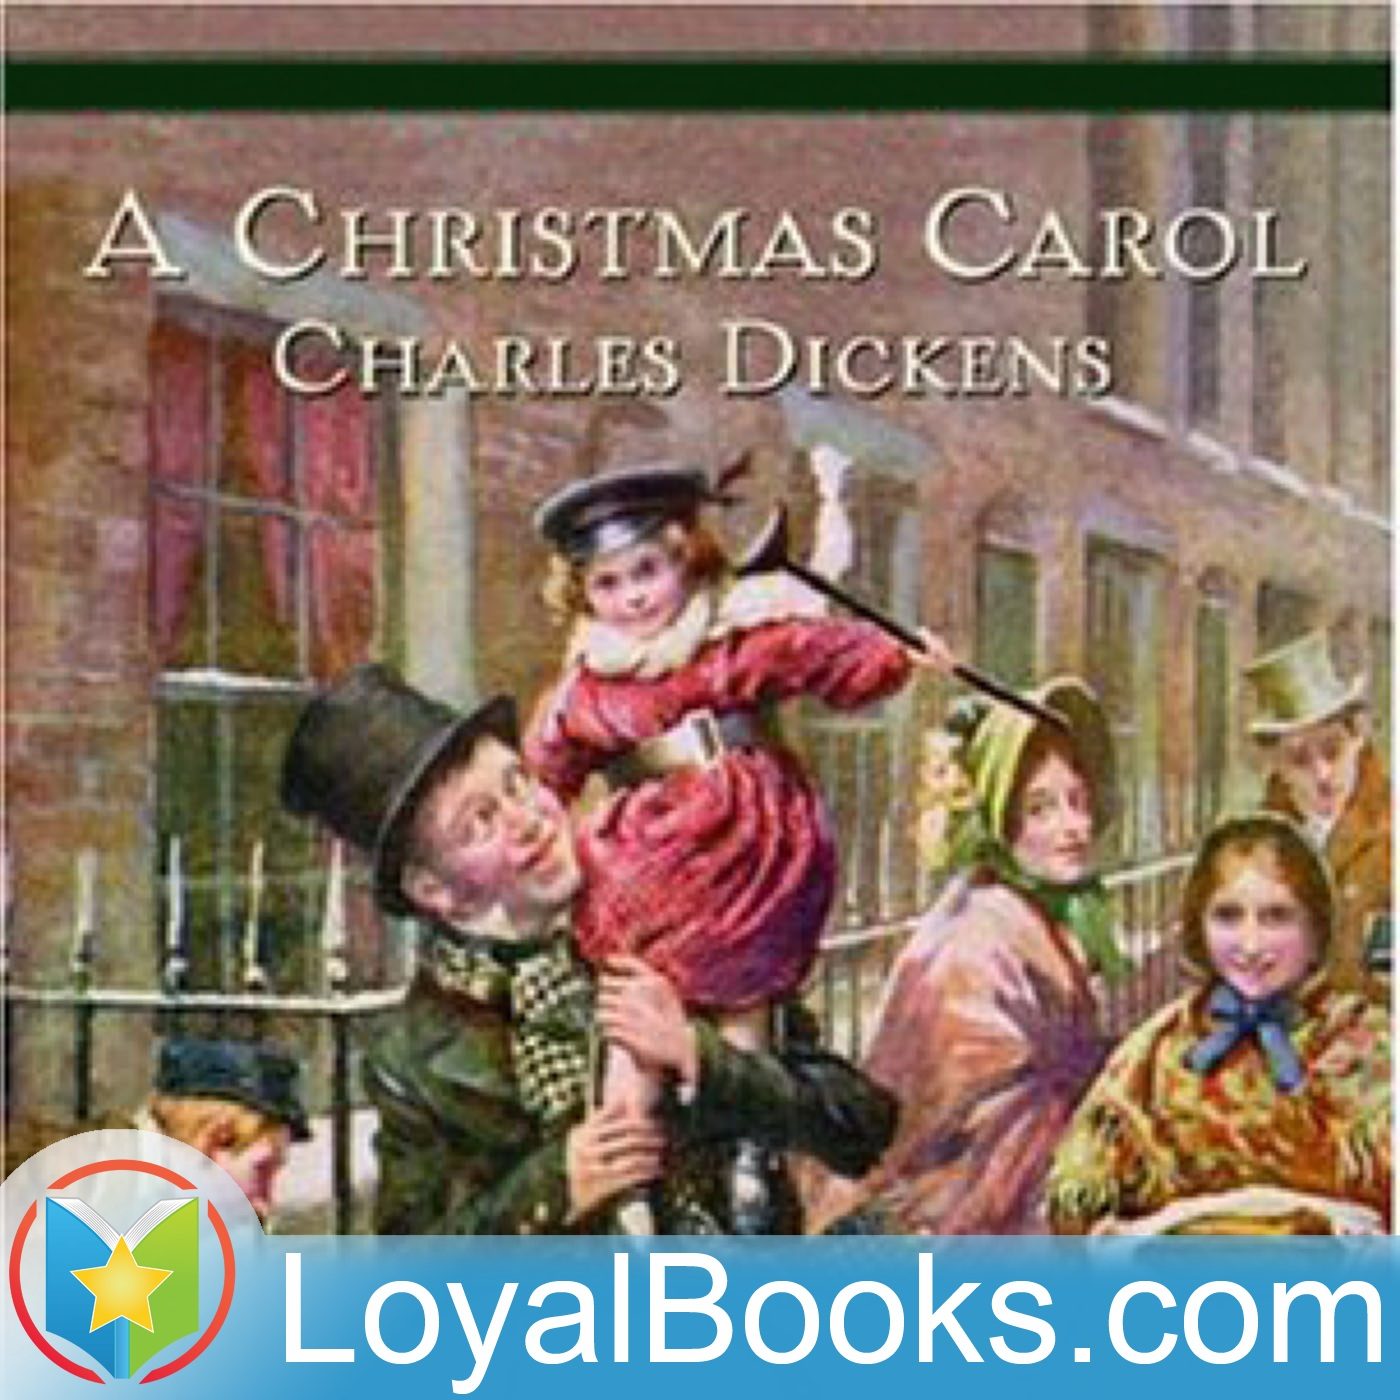 a christmas carol by charles dickens essays A christmas carol by charles dickens in this essay i intend to write about ebenezer scrooge who is the key character of the astonishing novel written by charles dickens one of greatest english novelist of he victorian period.